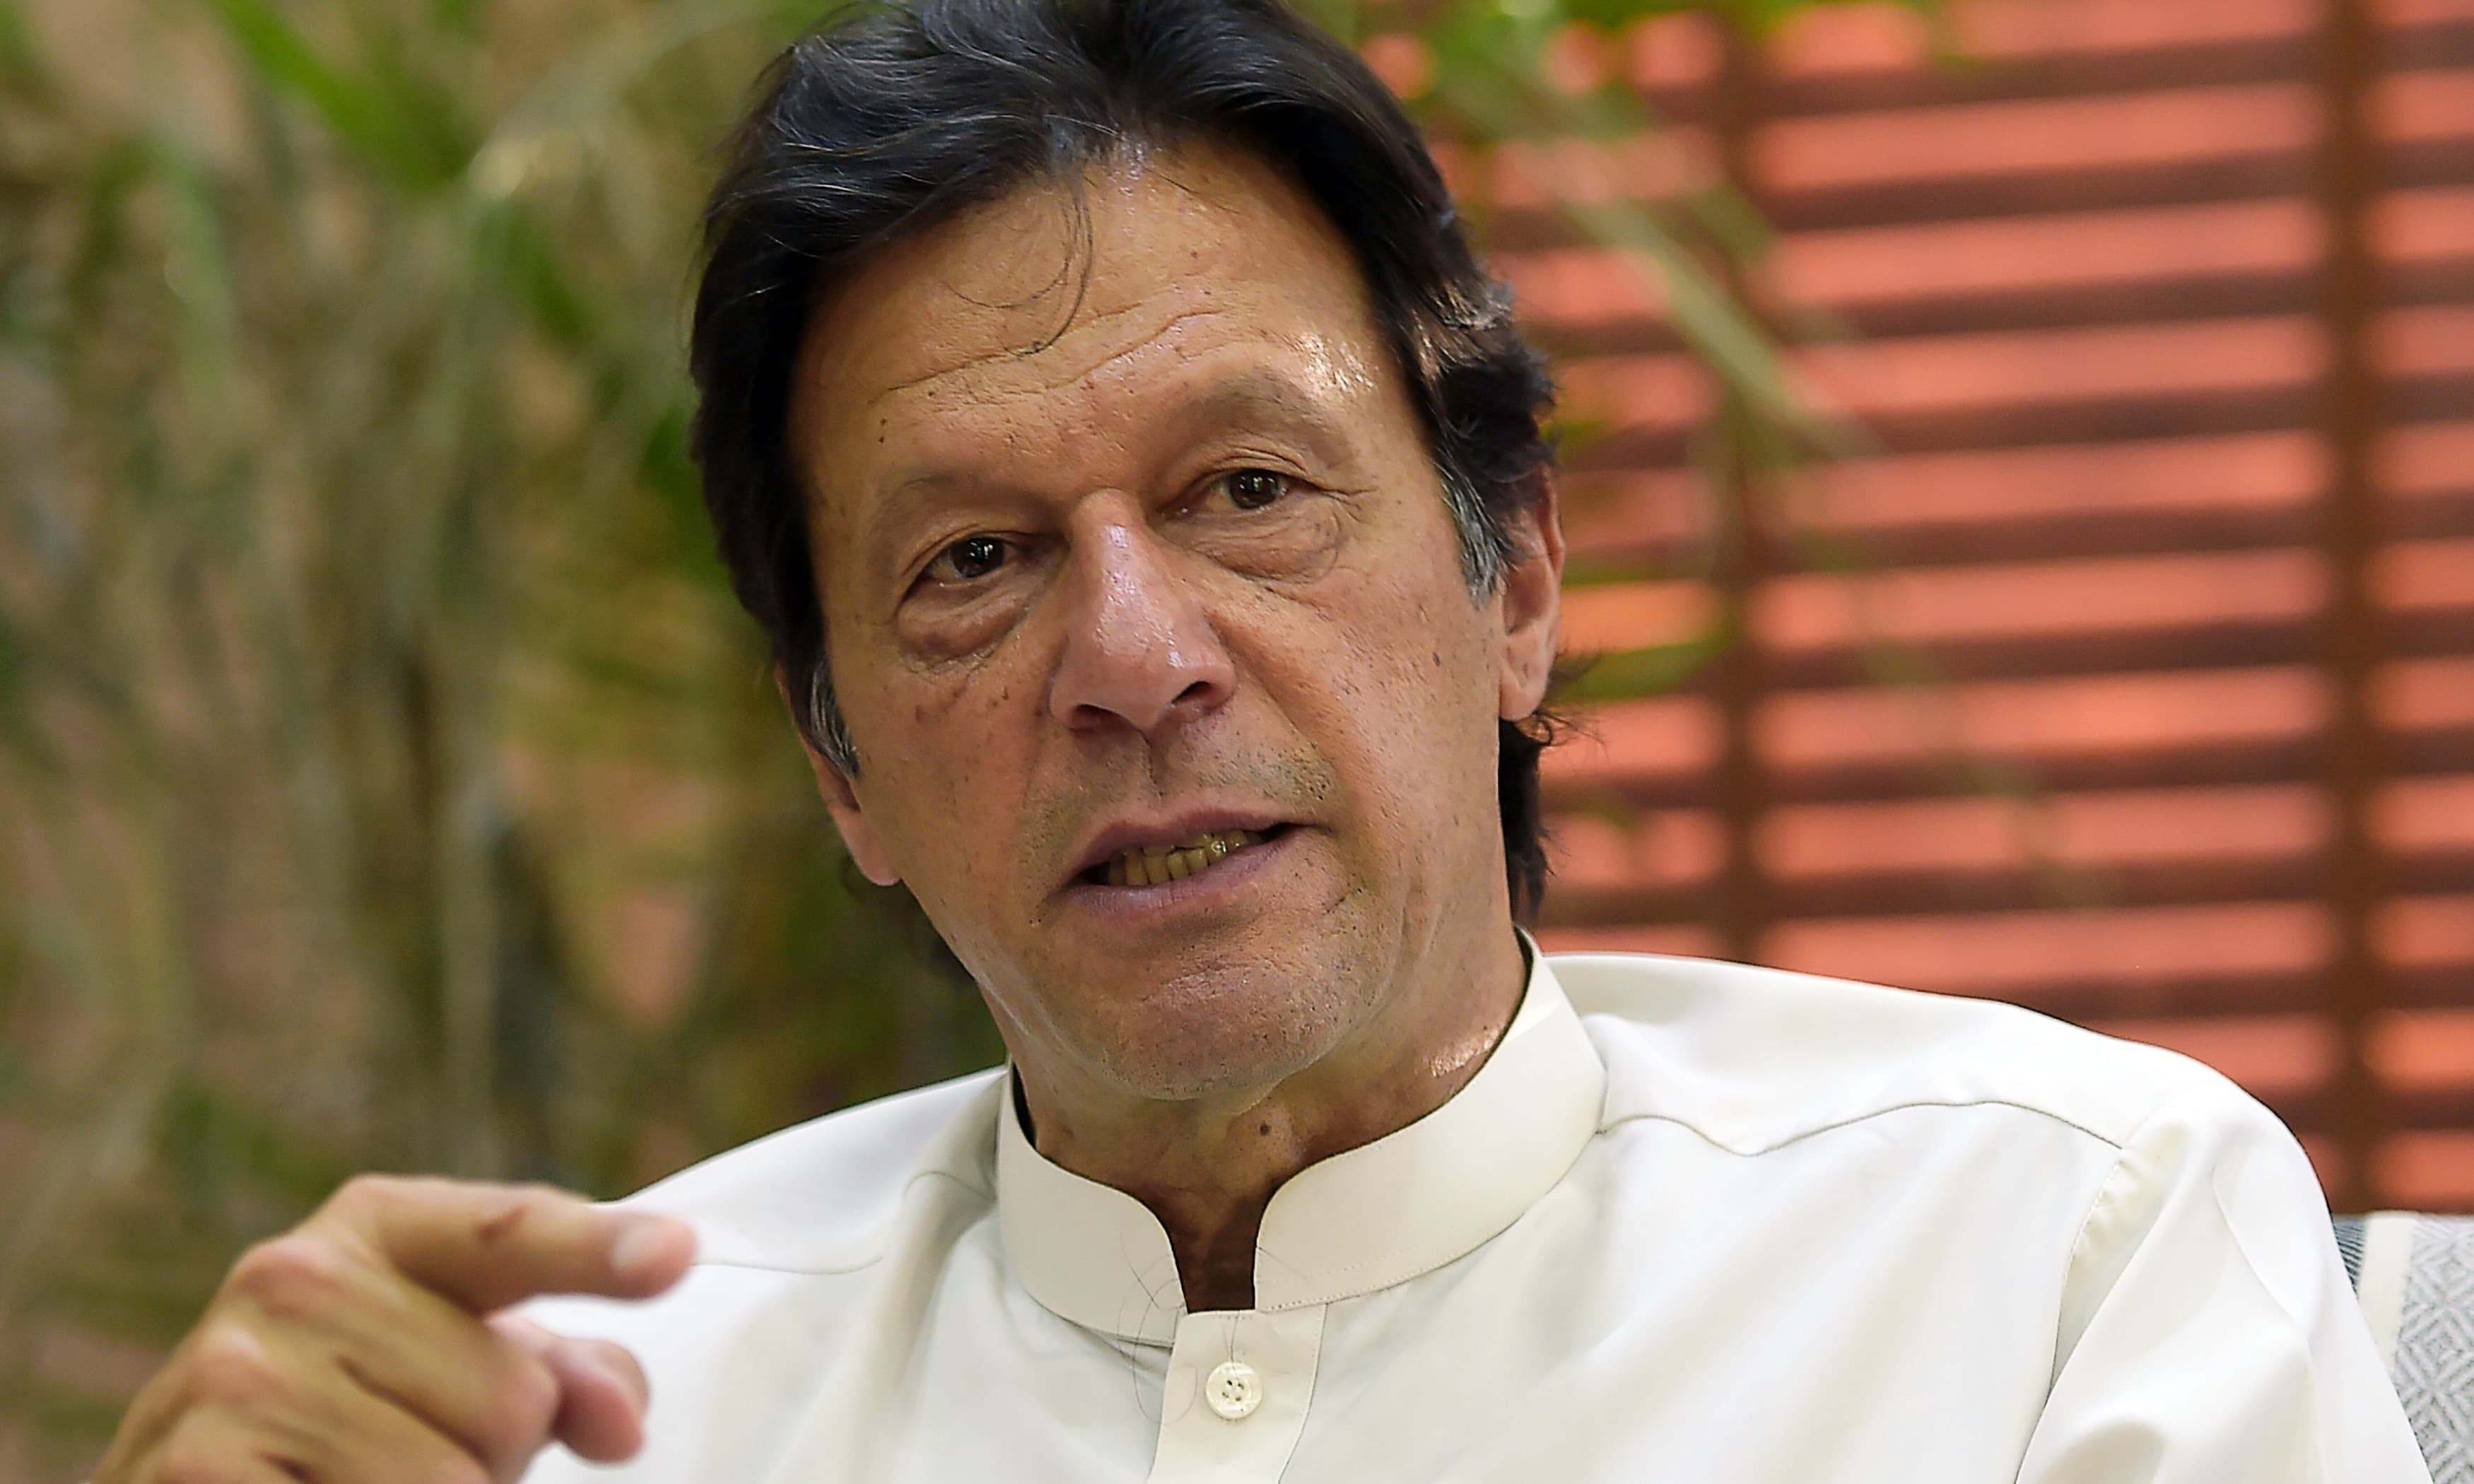 Taking notice of rising prices of perishable products, Prime Minister Imran Khan on Thursday asked relevant ministries to come up with a workable solution to bring down prices of essential commodities. — AFP/File